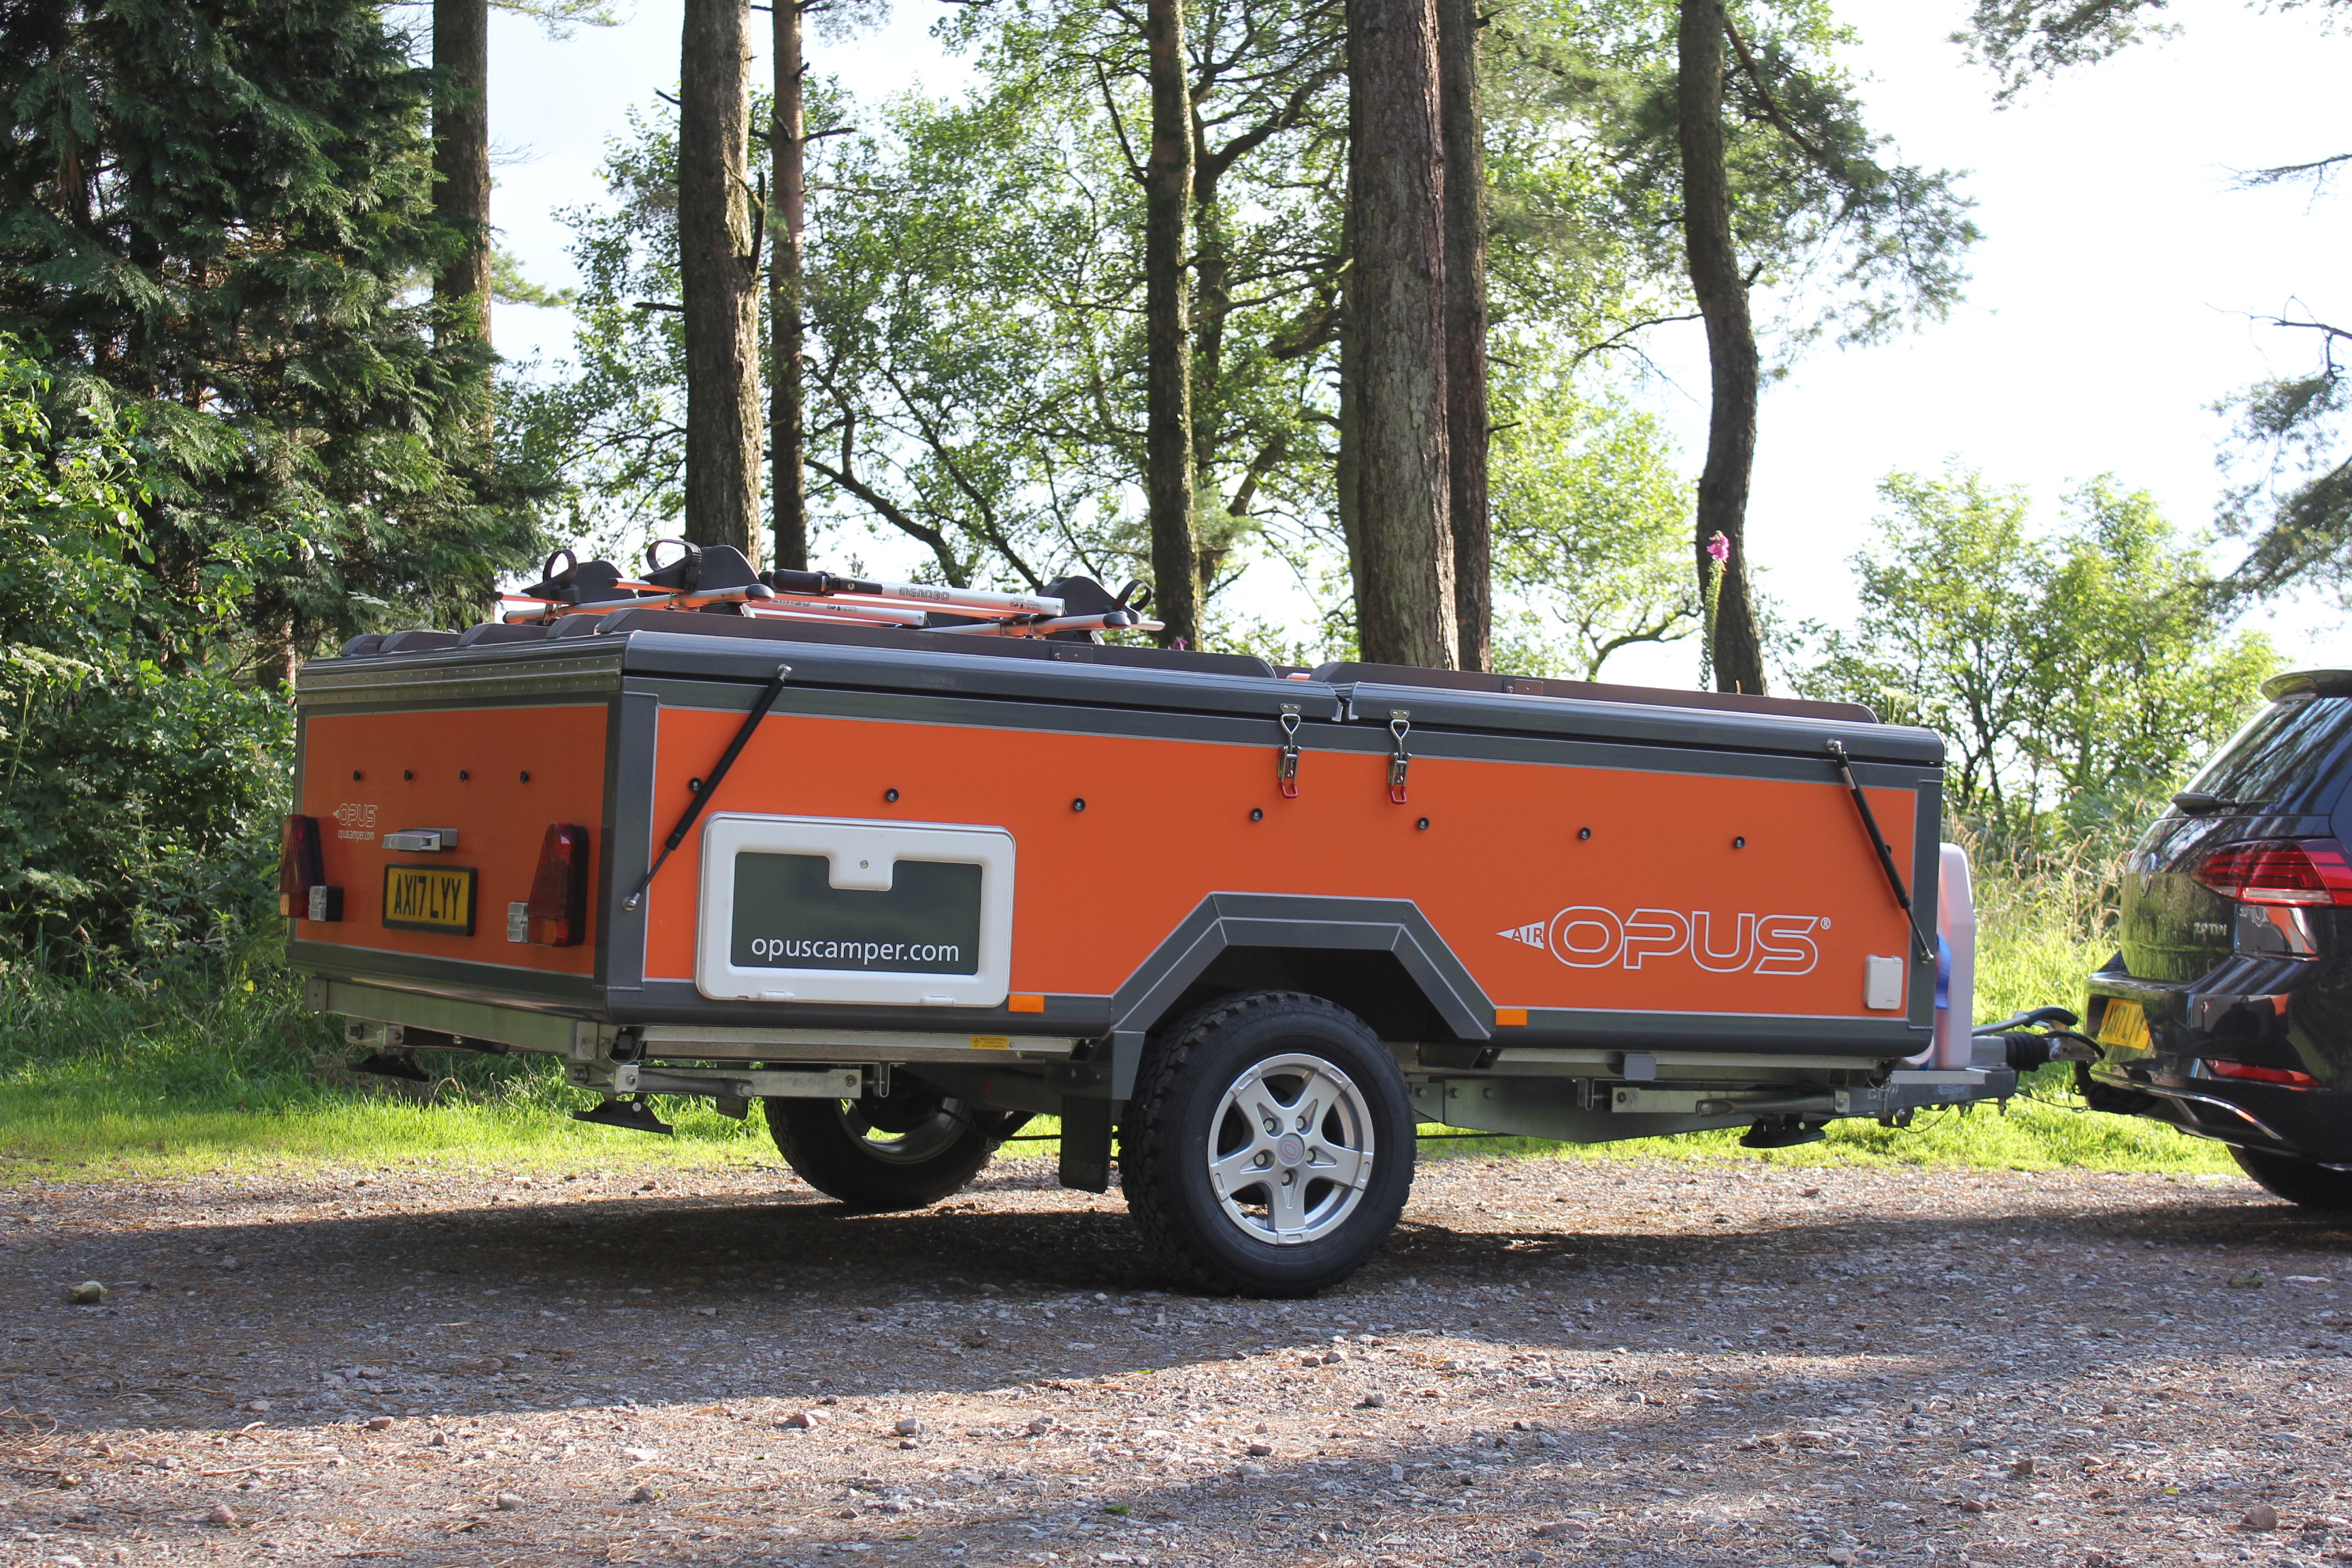 Self-inflating camping trailer sets up in just 90 seconds